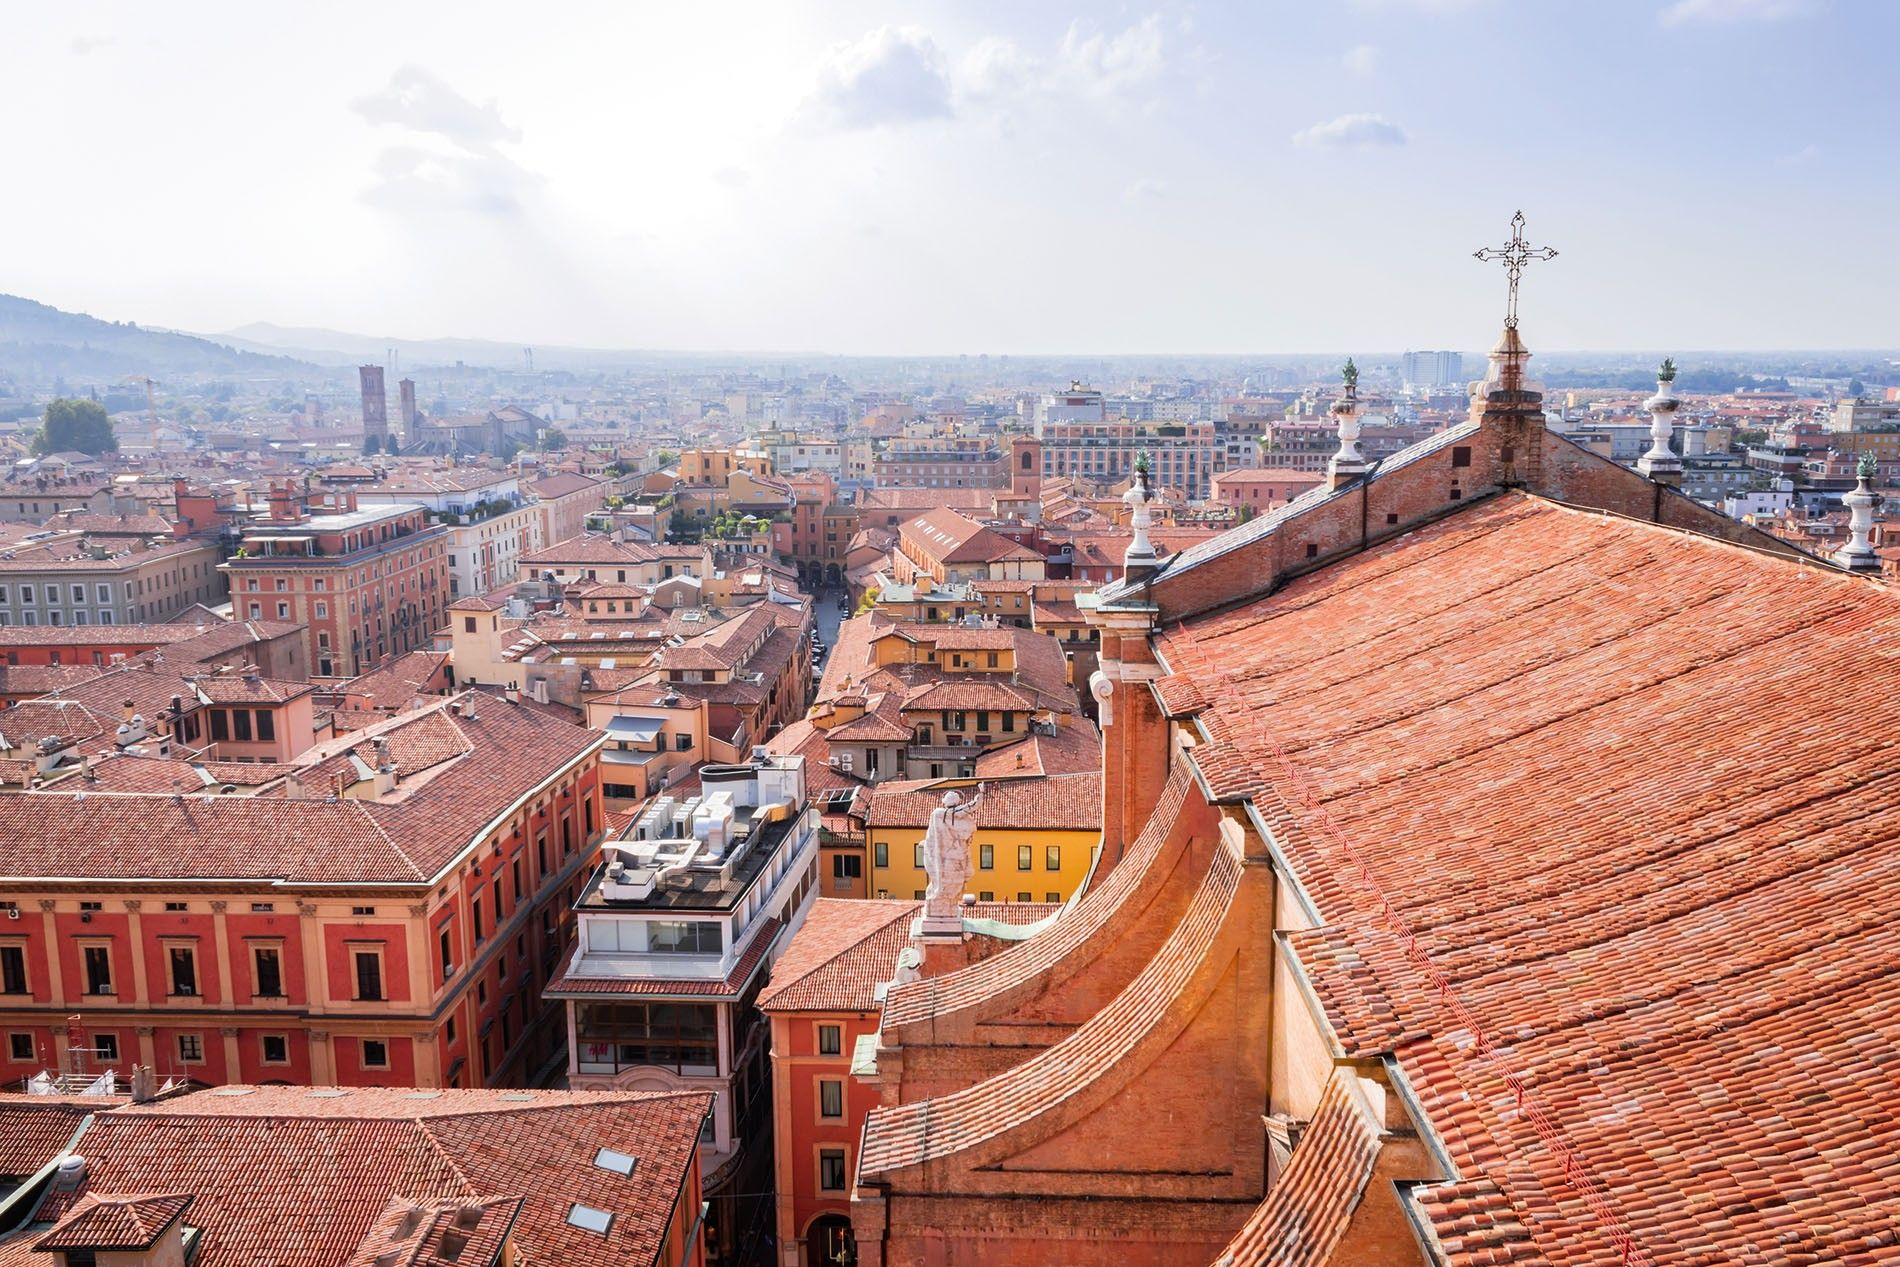 View of Lucca's rooftops